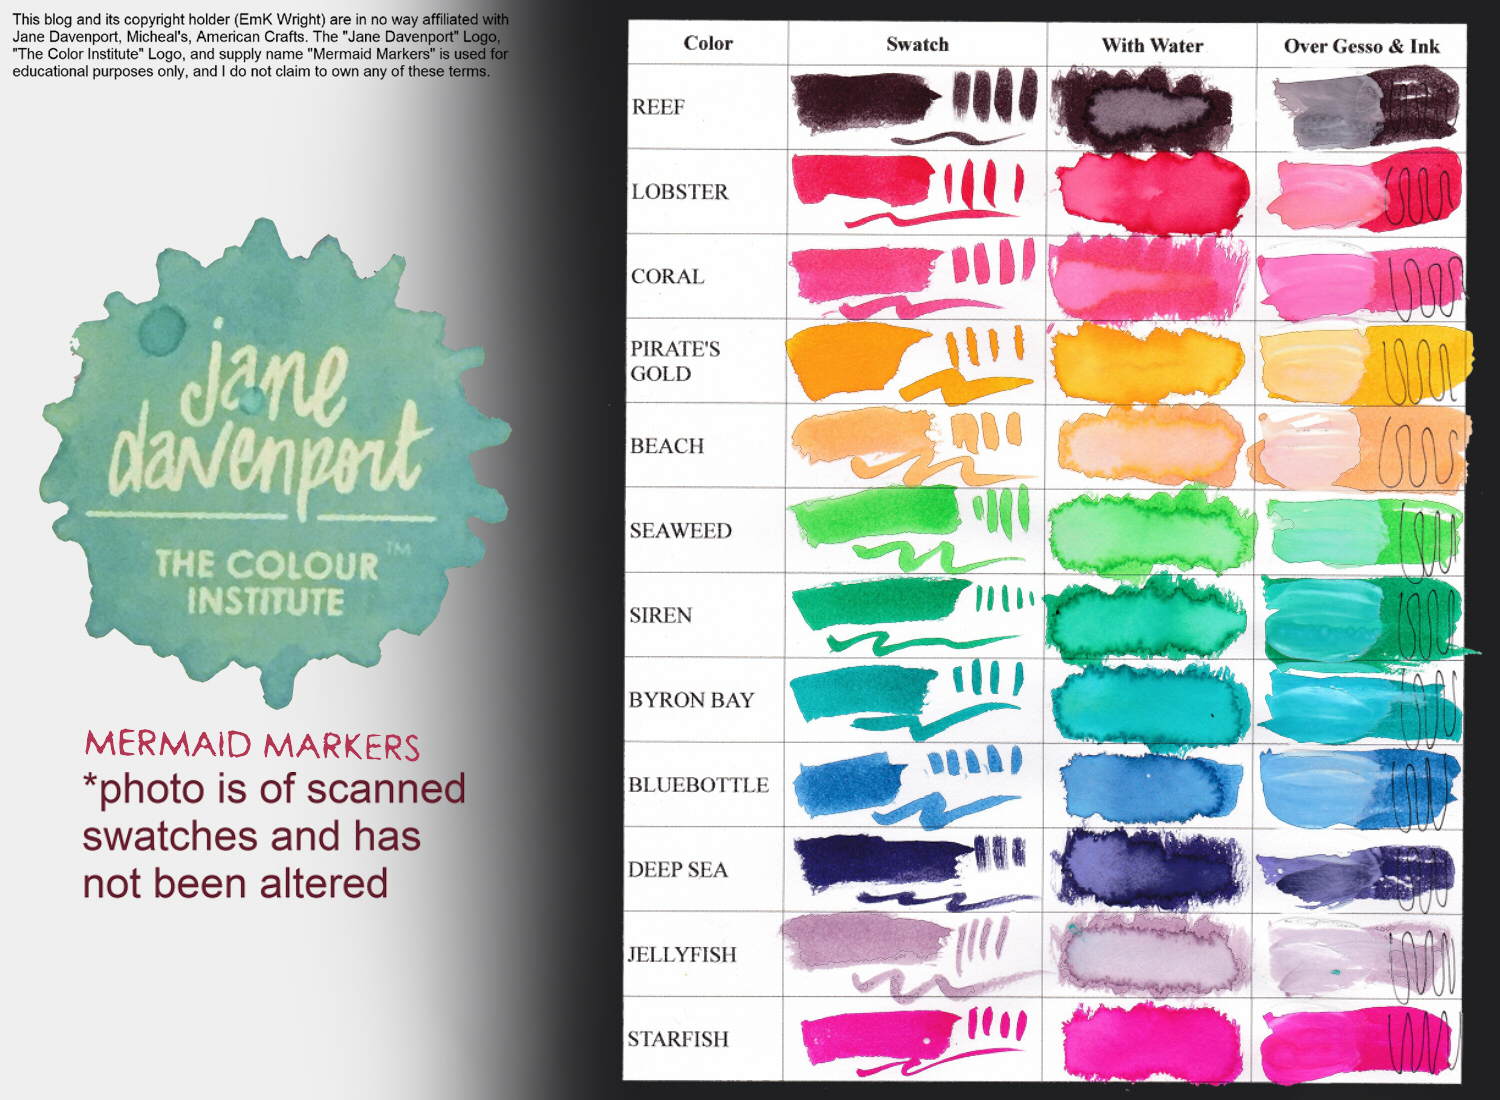 mermaid-marker-review-emk-wright-wwwdotmadebyemkdotcom-no-affiliation-with-jane-davenport-or-mermaid-marker-related-products-21.jpg